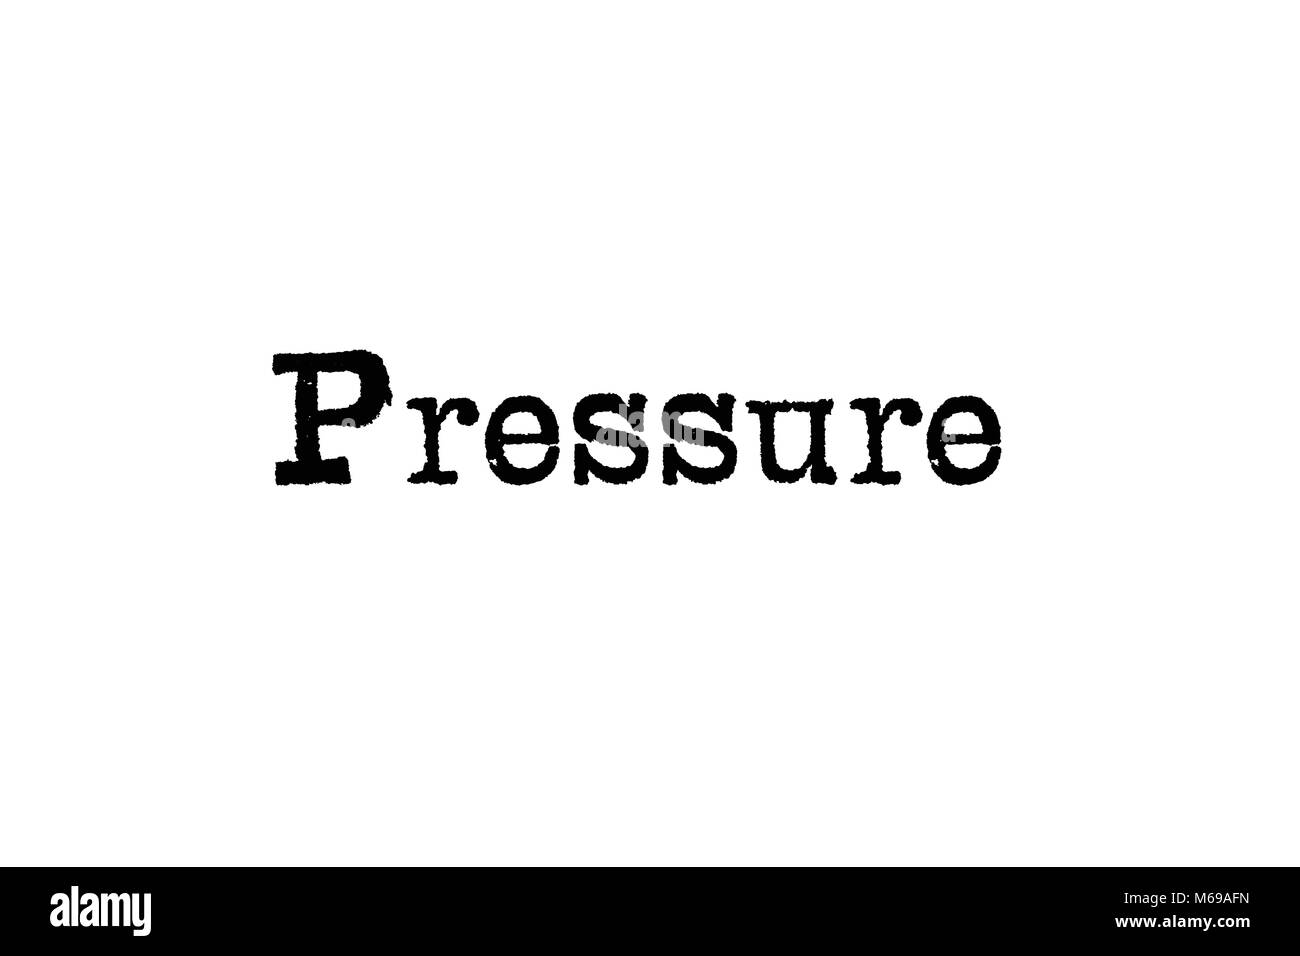 The word Pressure from a typewriter on a white background - Stock Image